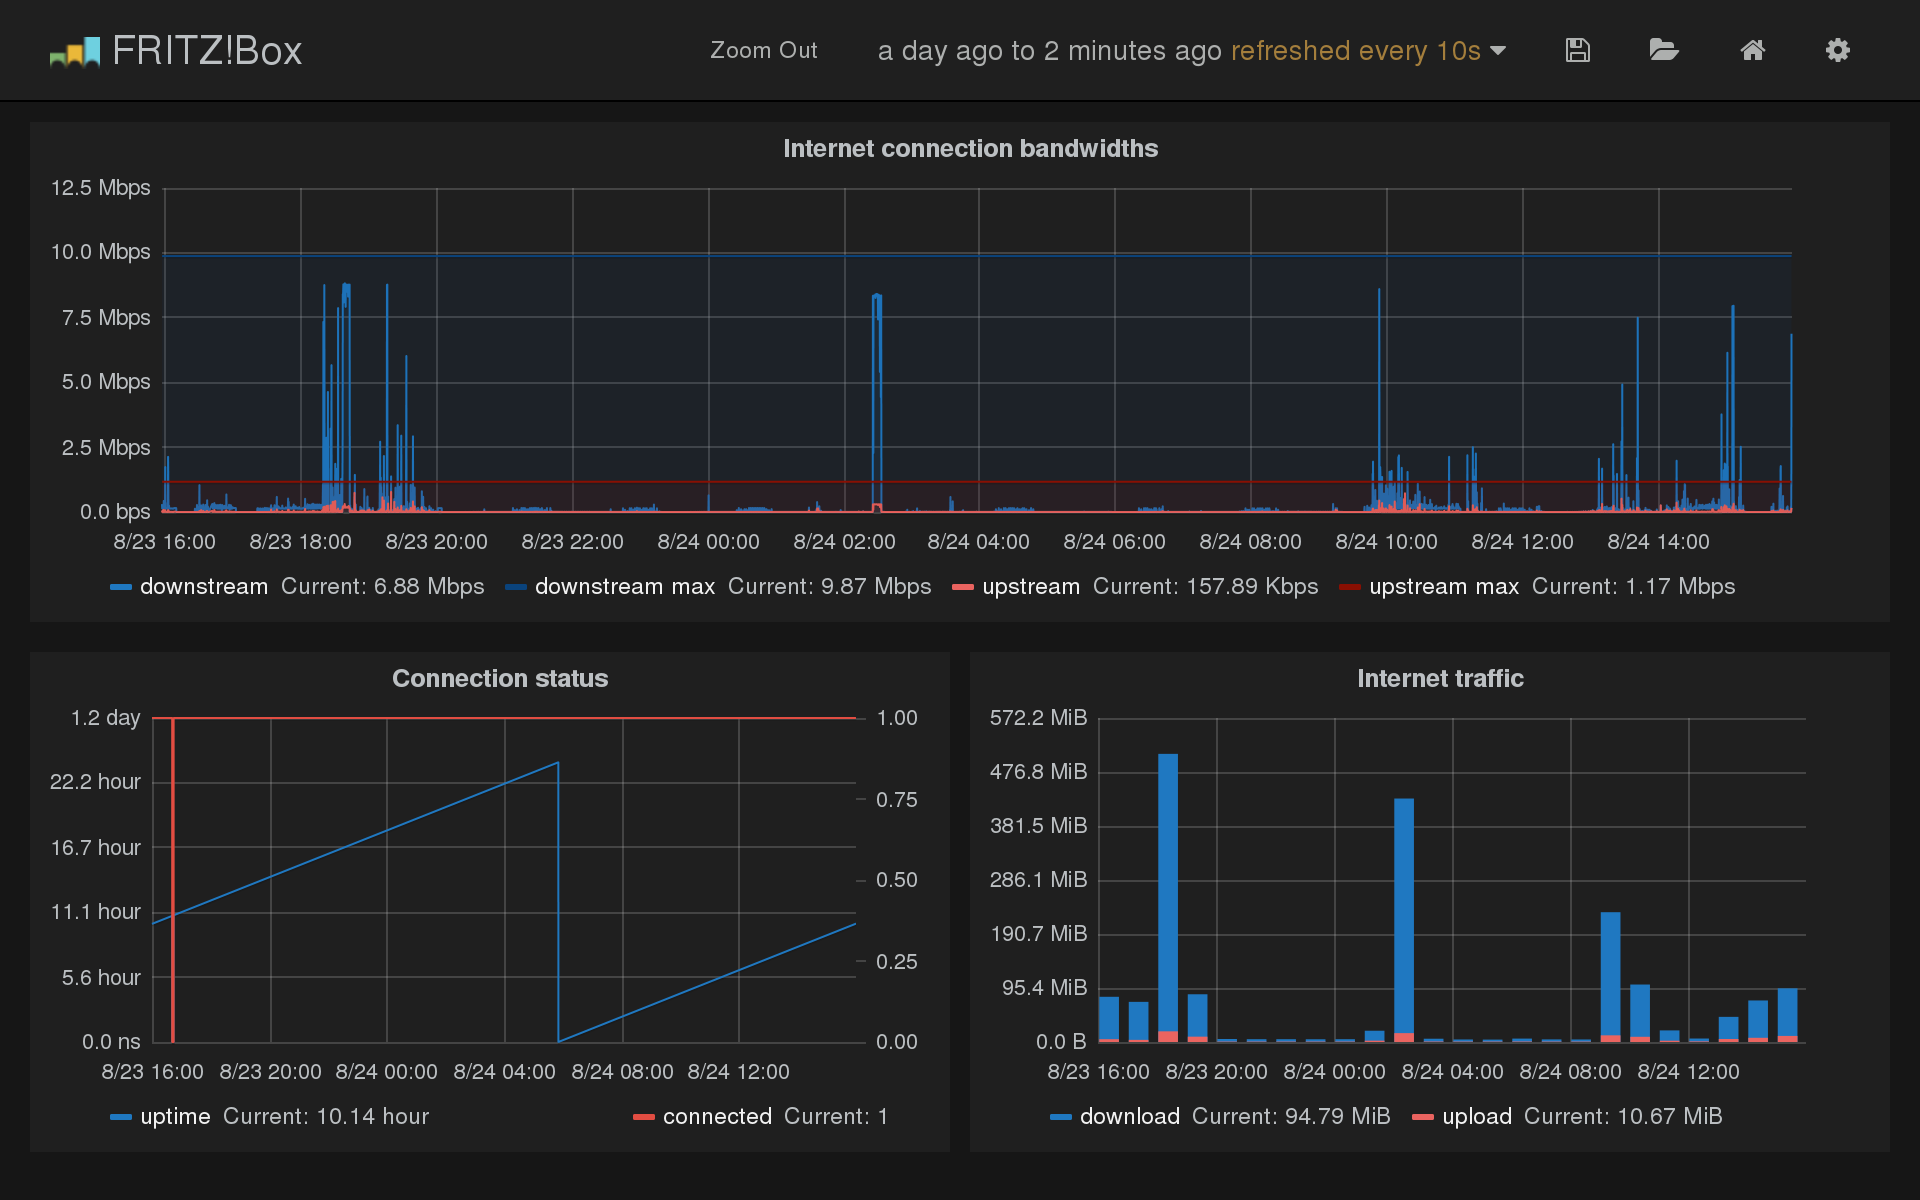 Grafana screenshot showing data from fritzcollectd